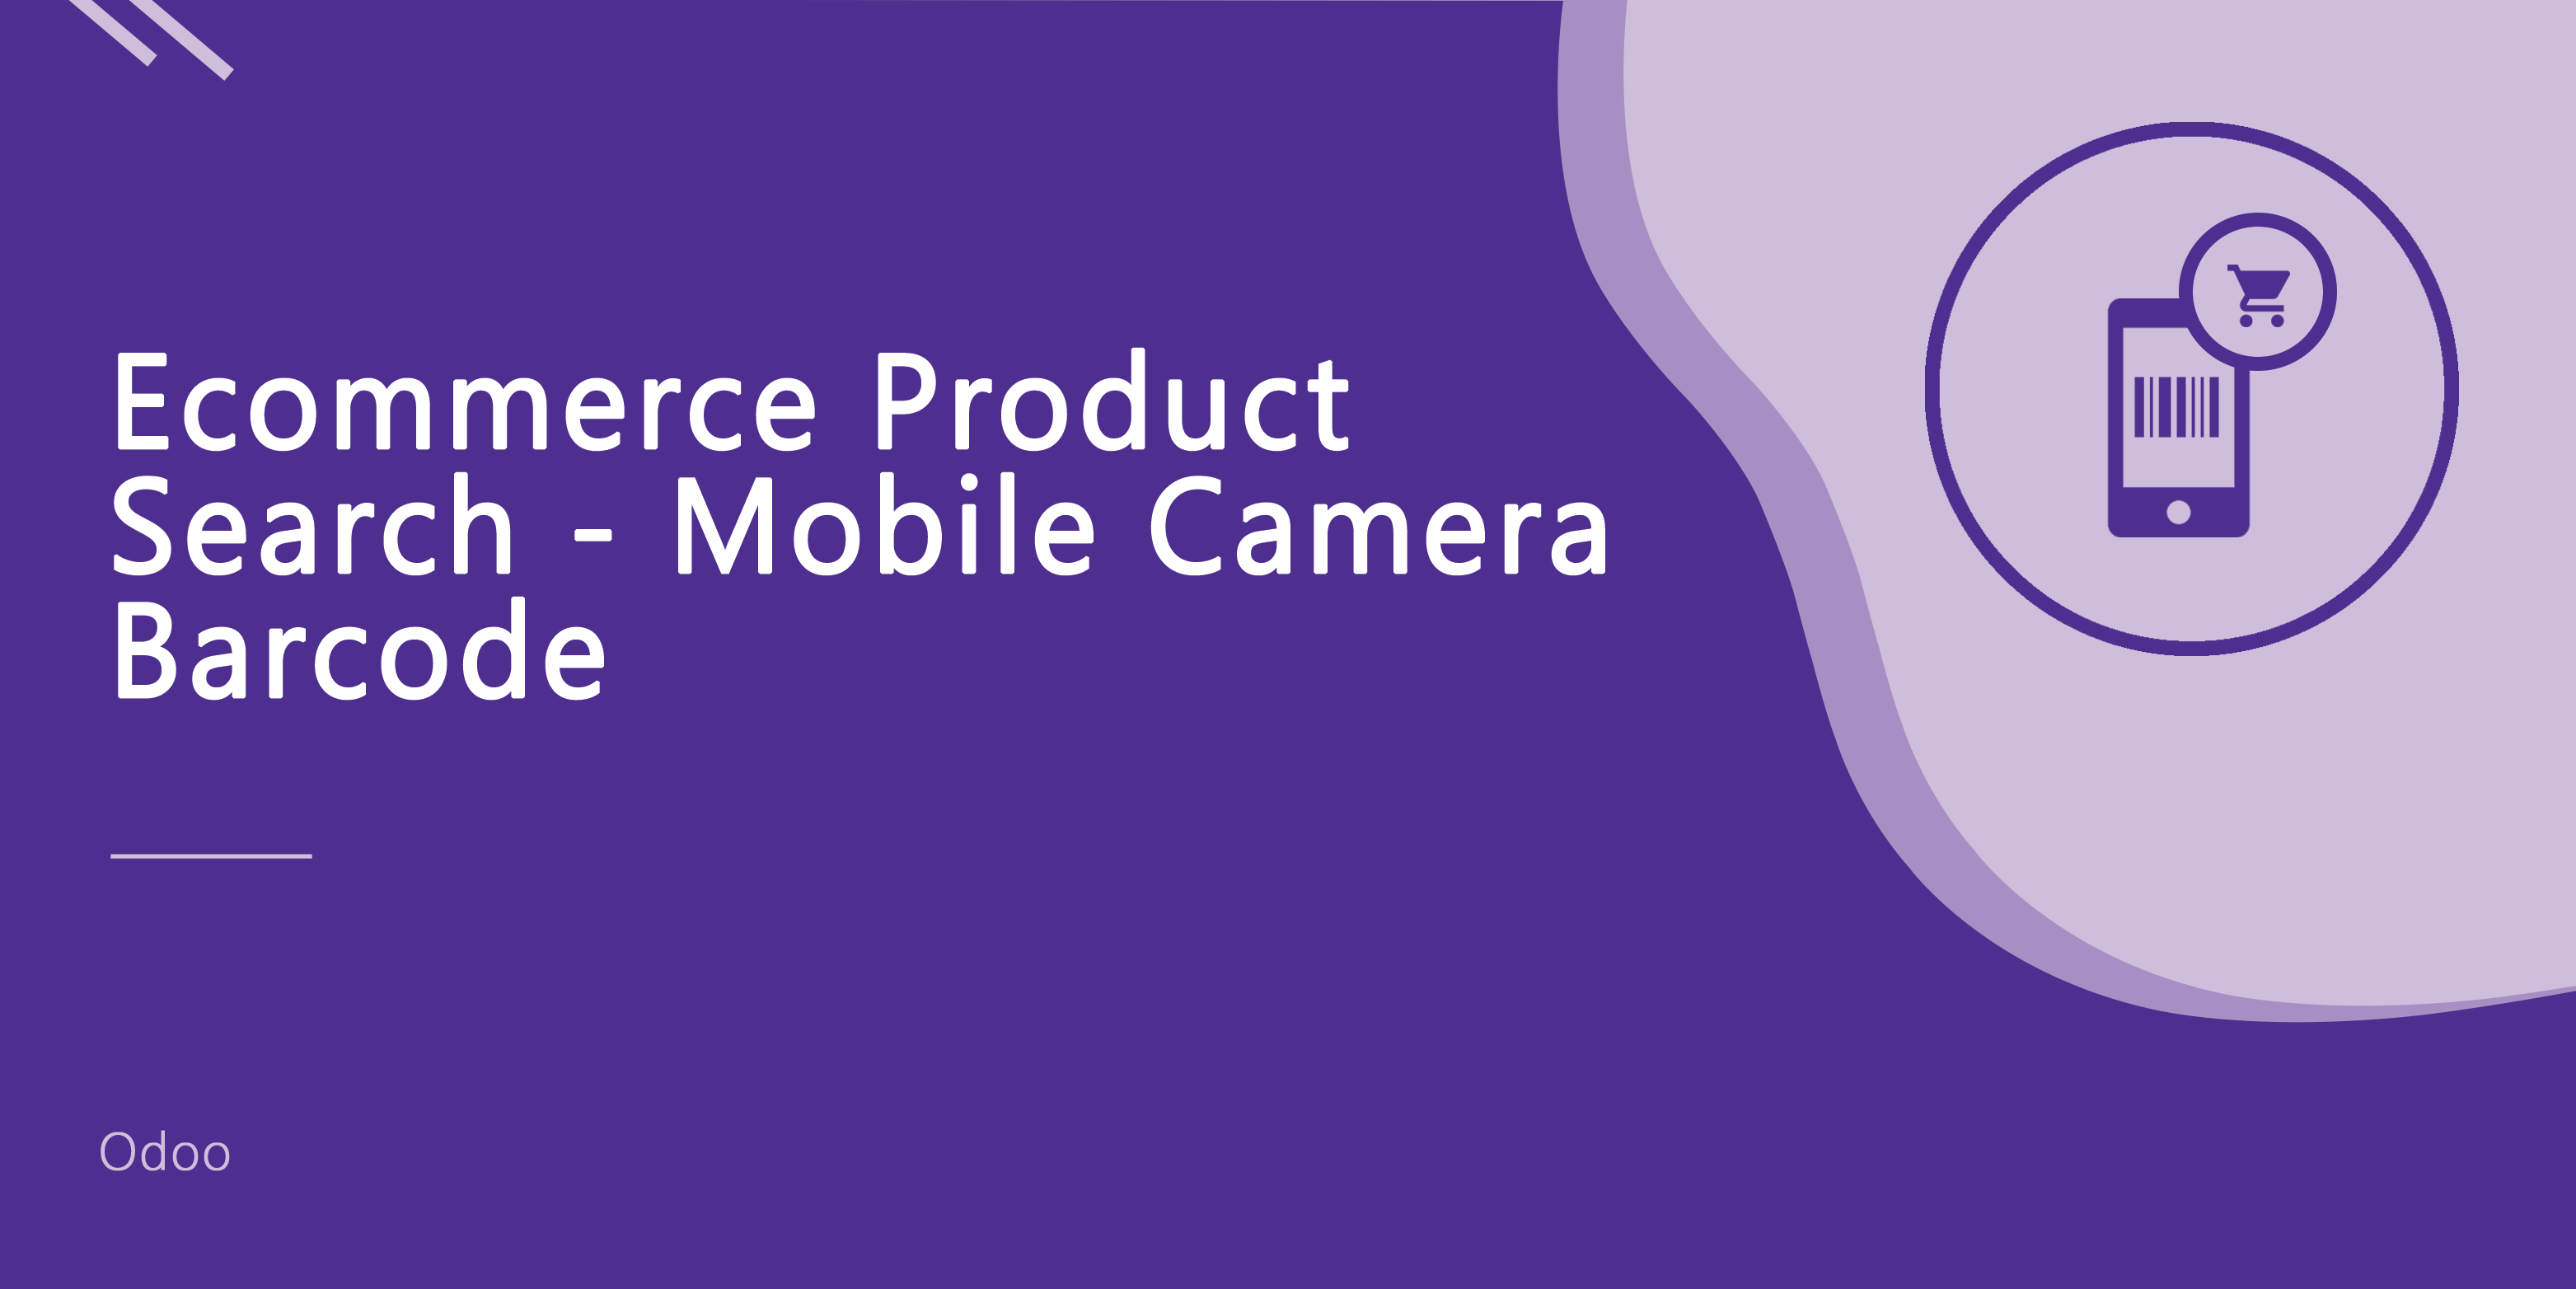 Ecommerce Product Search - Mobile Camera Barcode